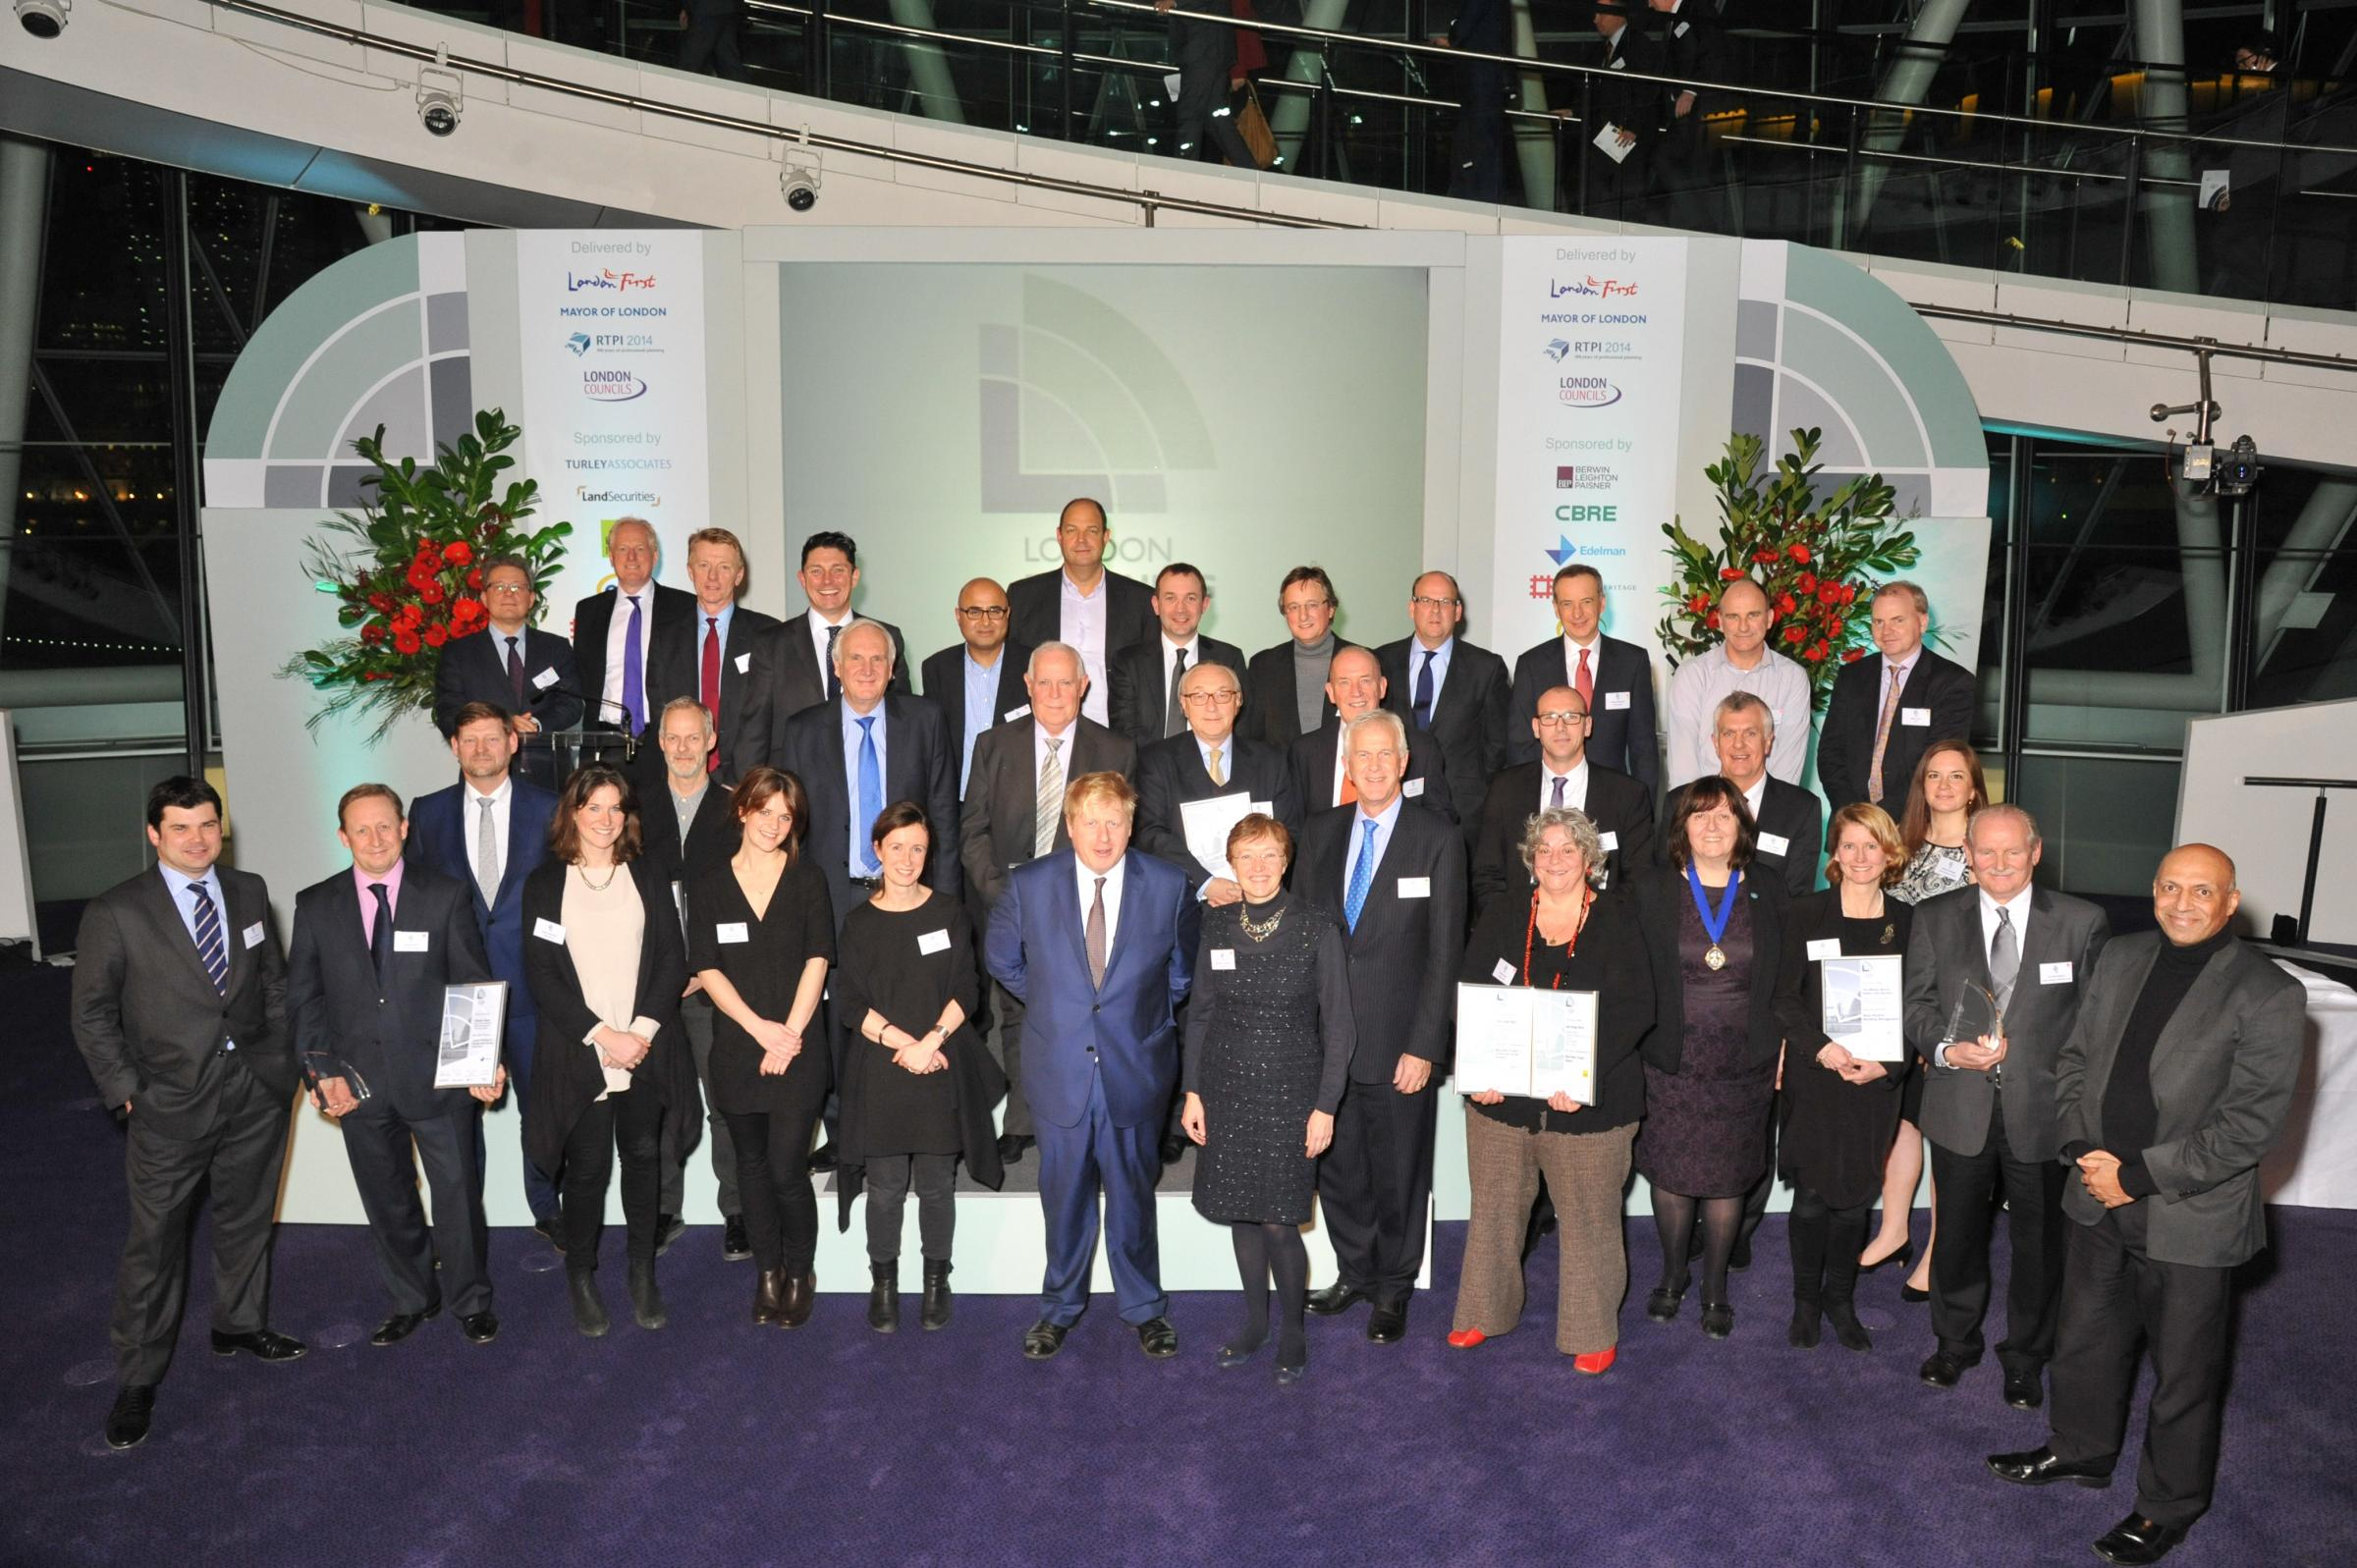 Award winners with London Mayor Boris Johnson.